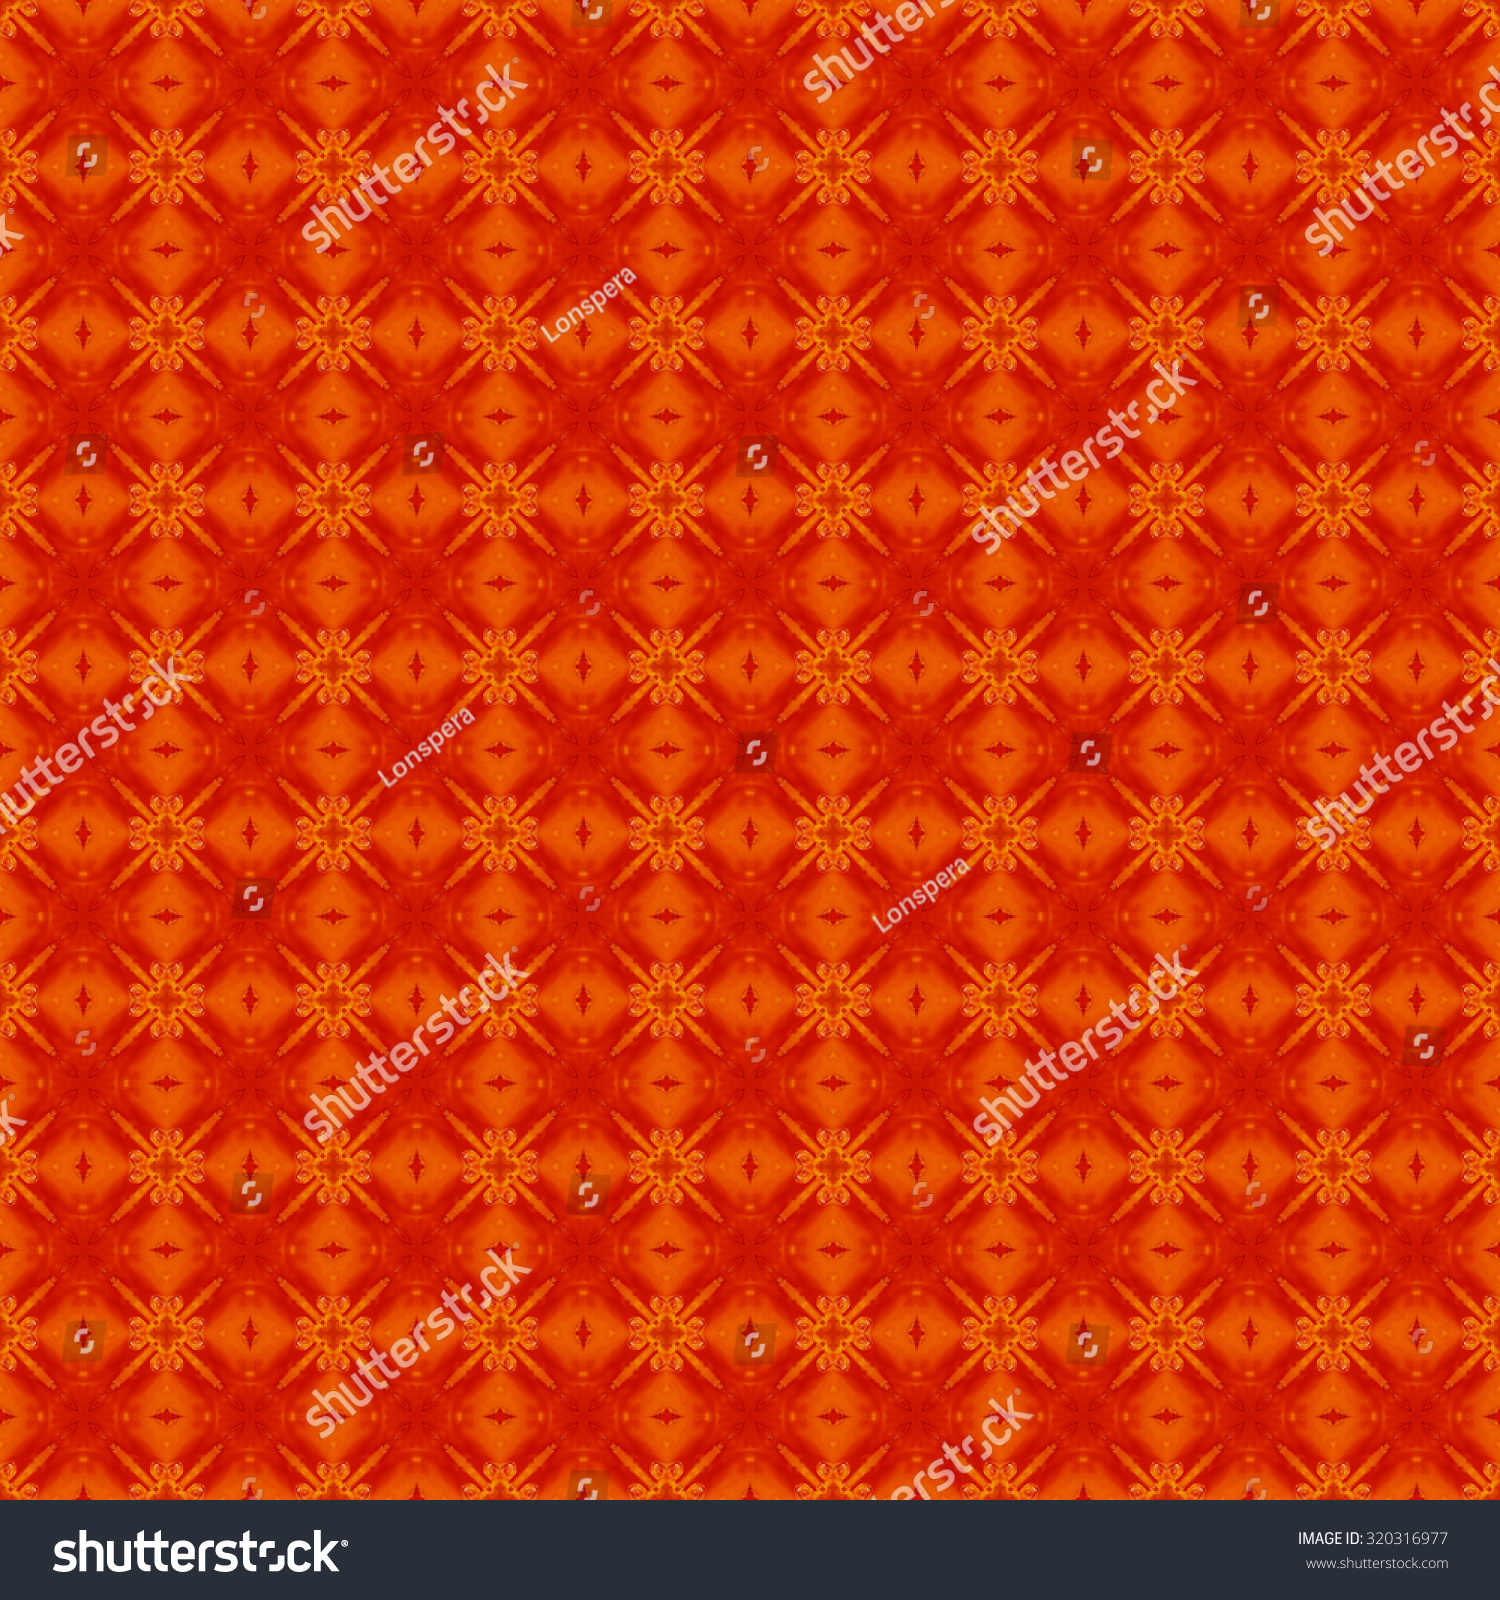 generated seamless tile background - photo #27